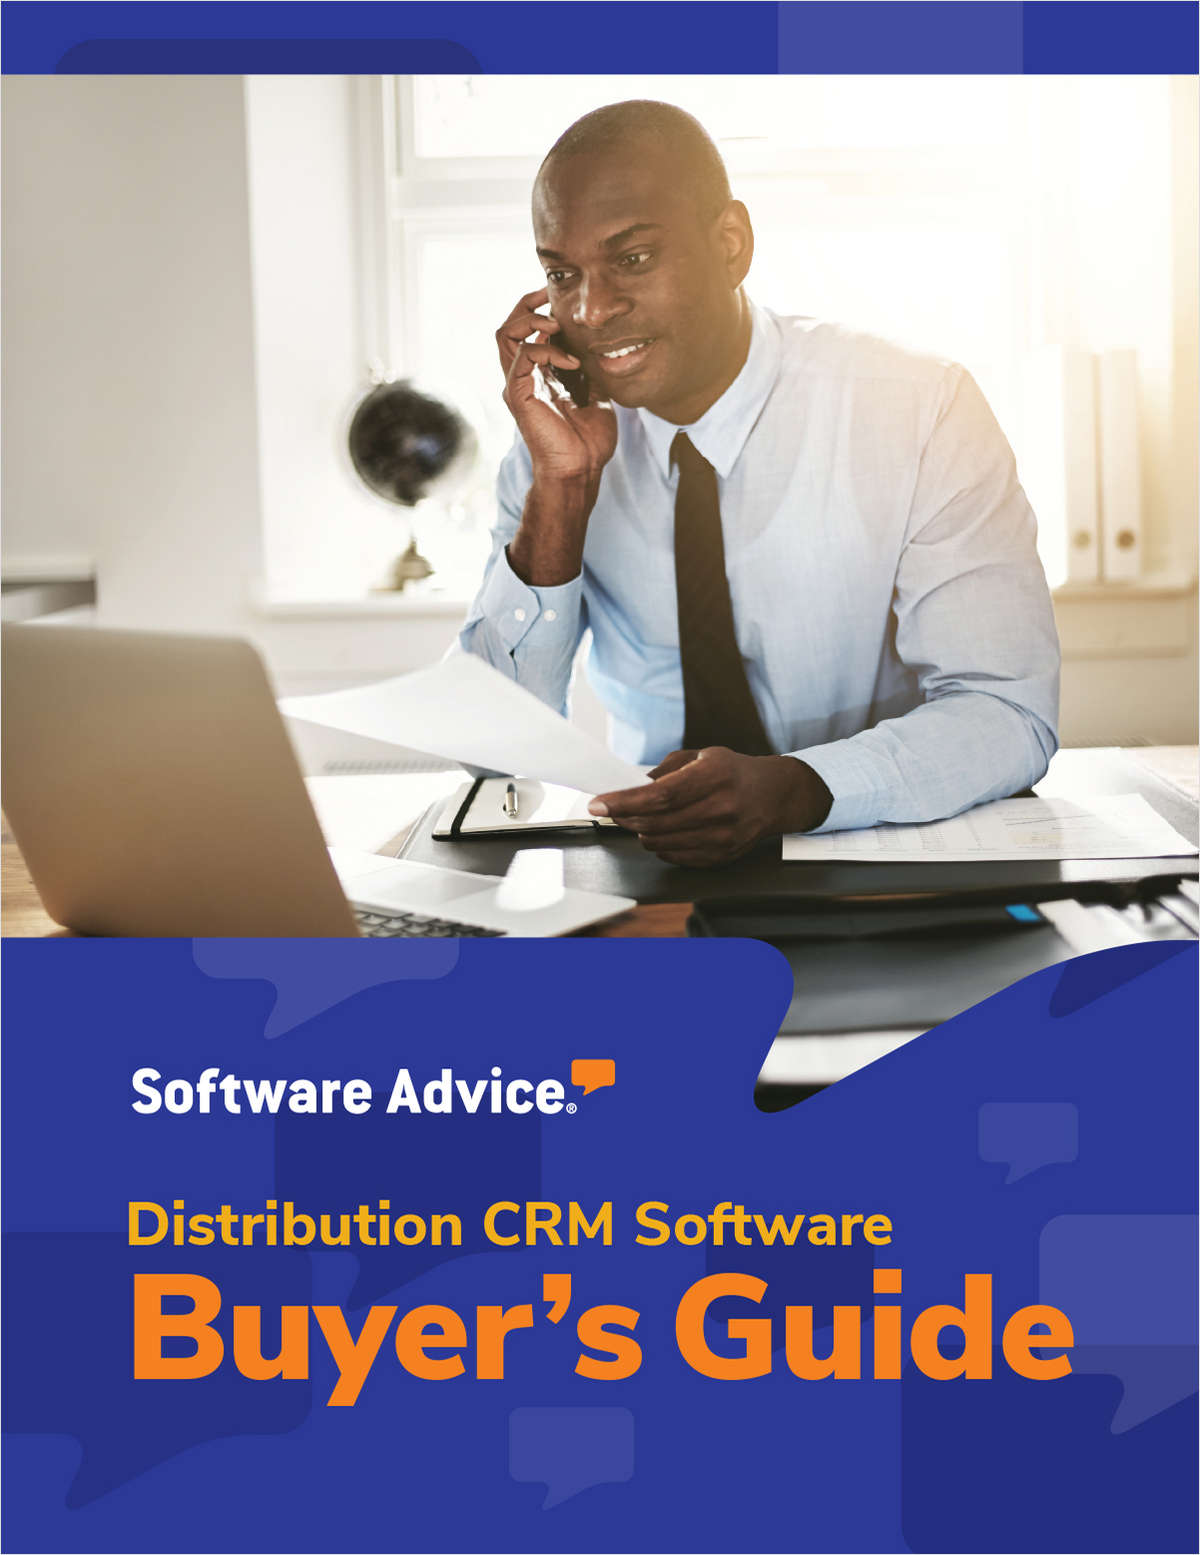 What You Need to Know Before Buying Distribution CRM Software